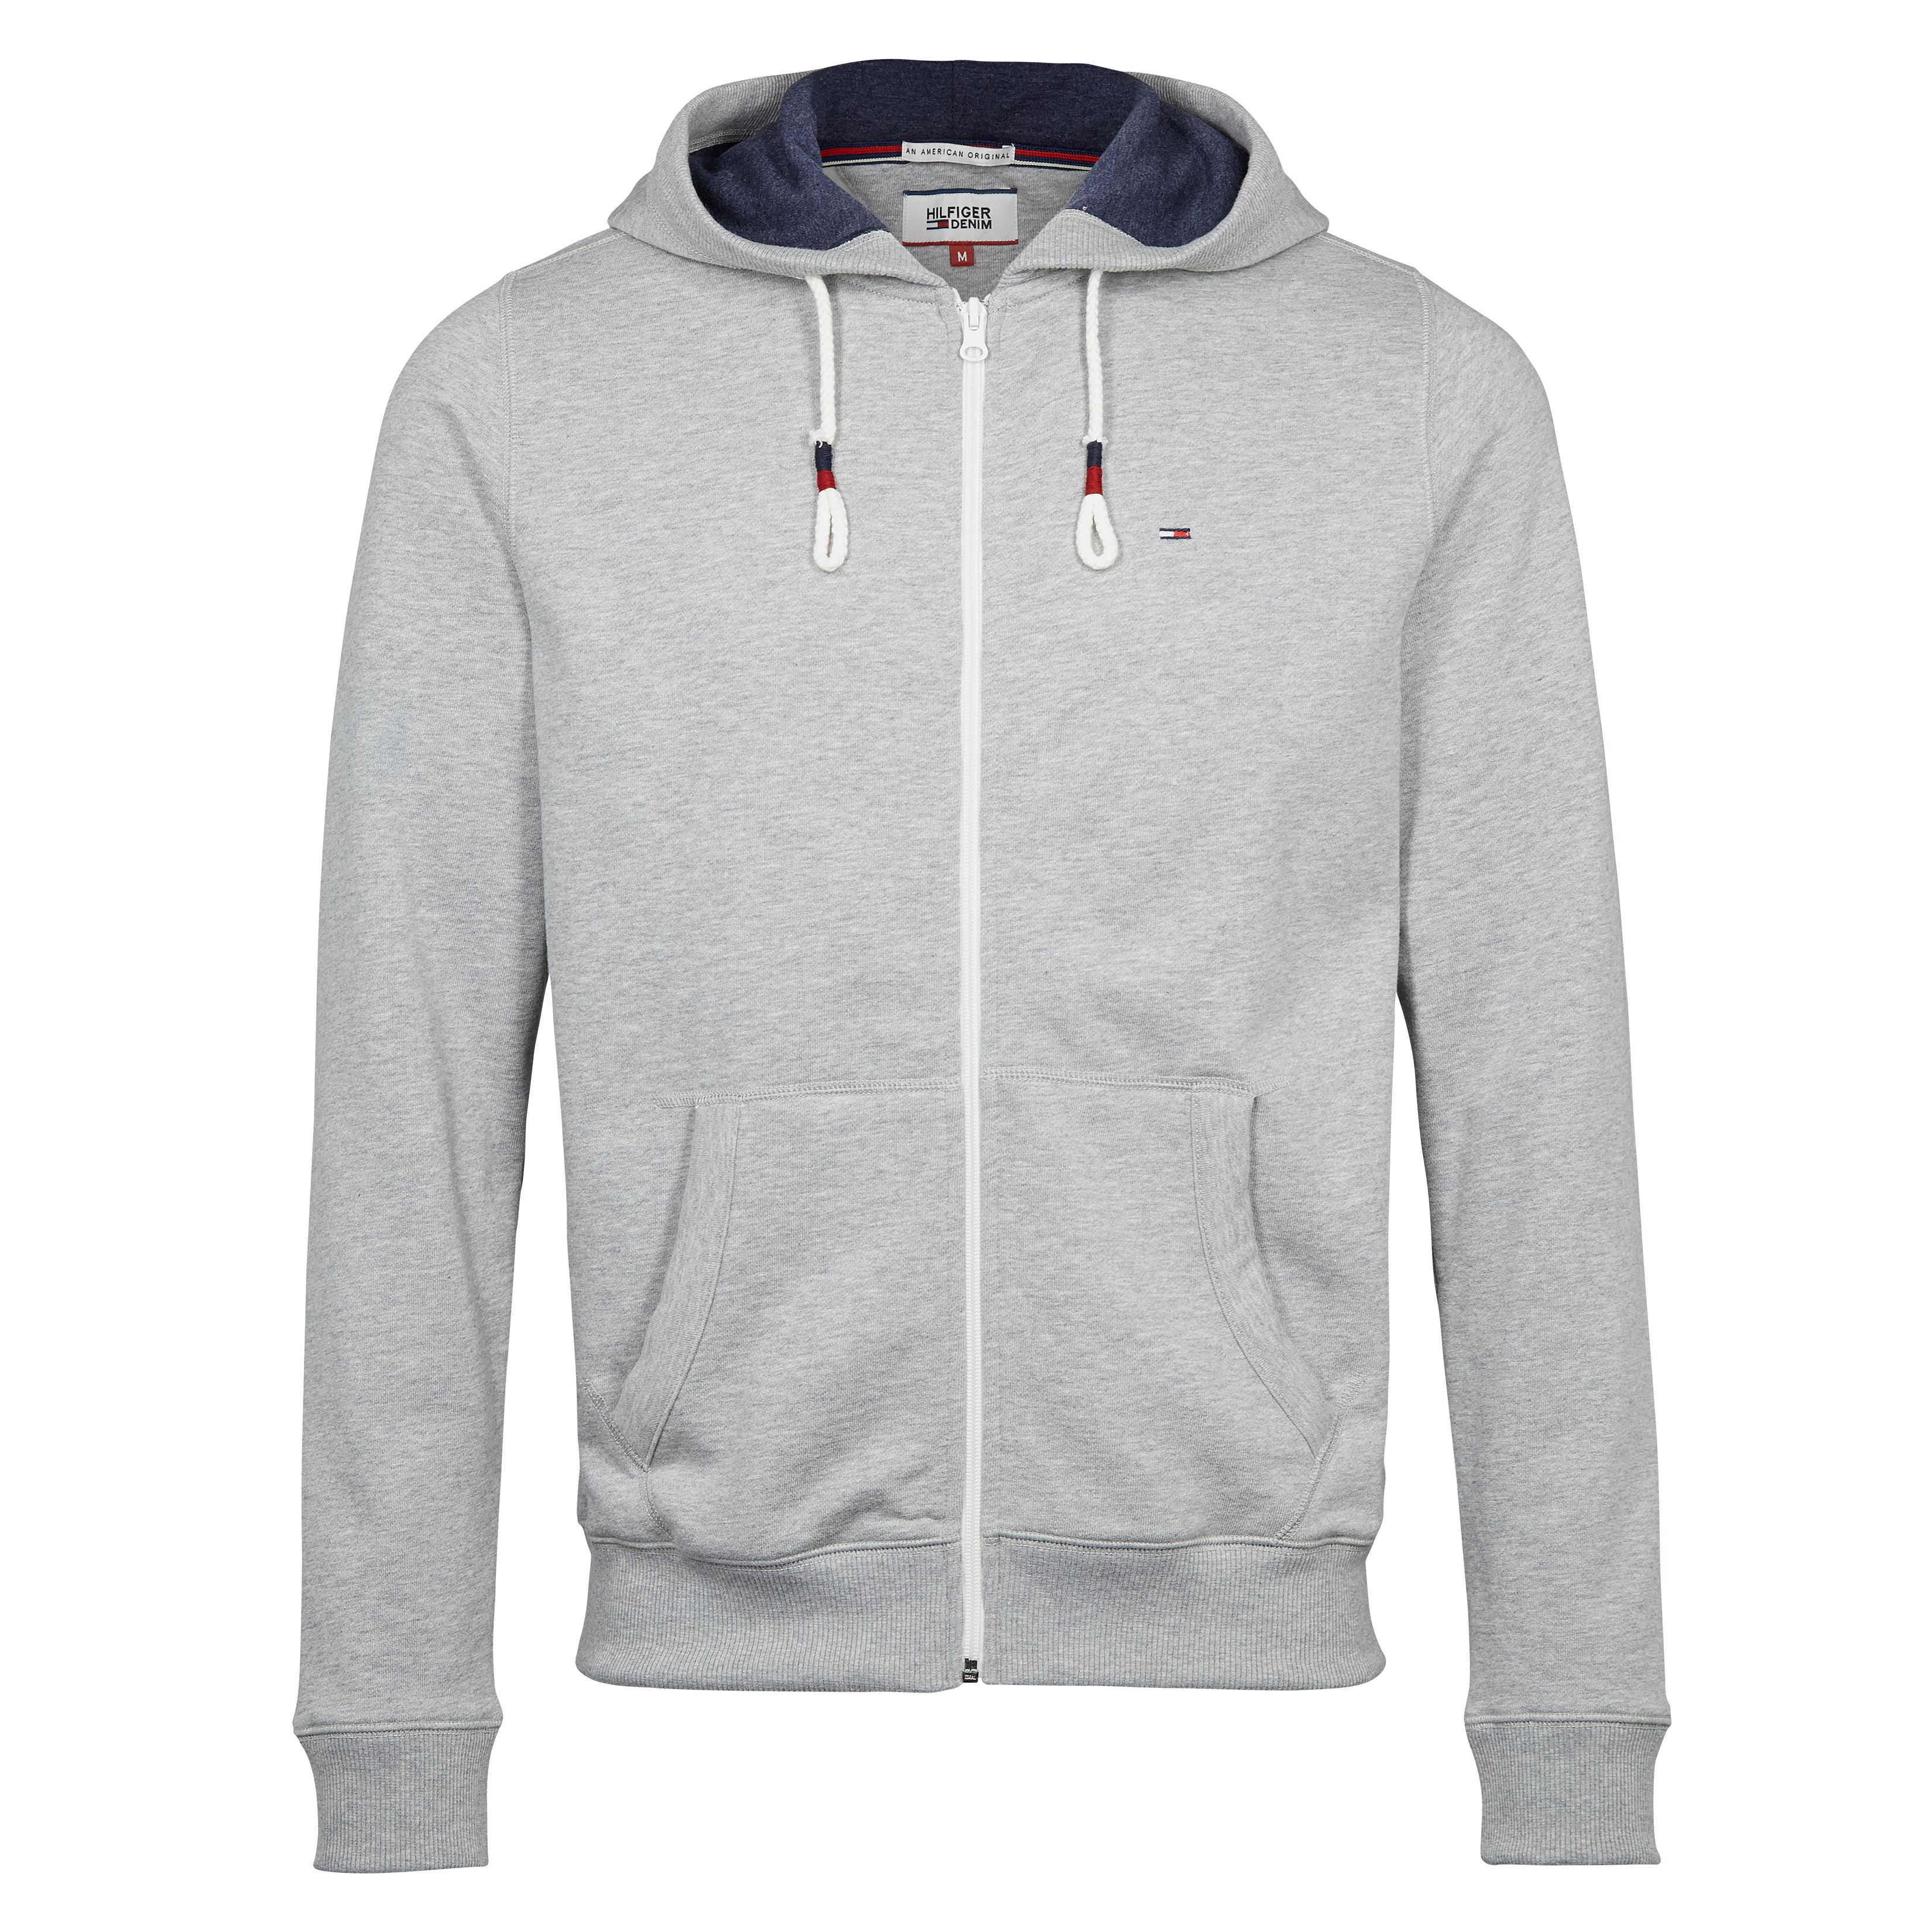 Men's Tommy Hilfiger Original Zip Through Hoody, Light Grey